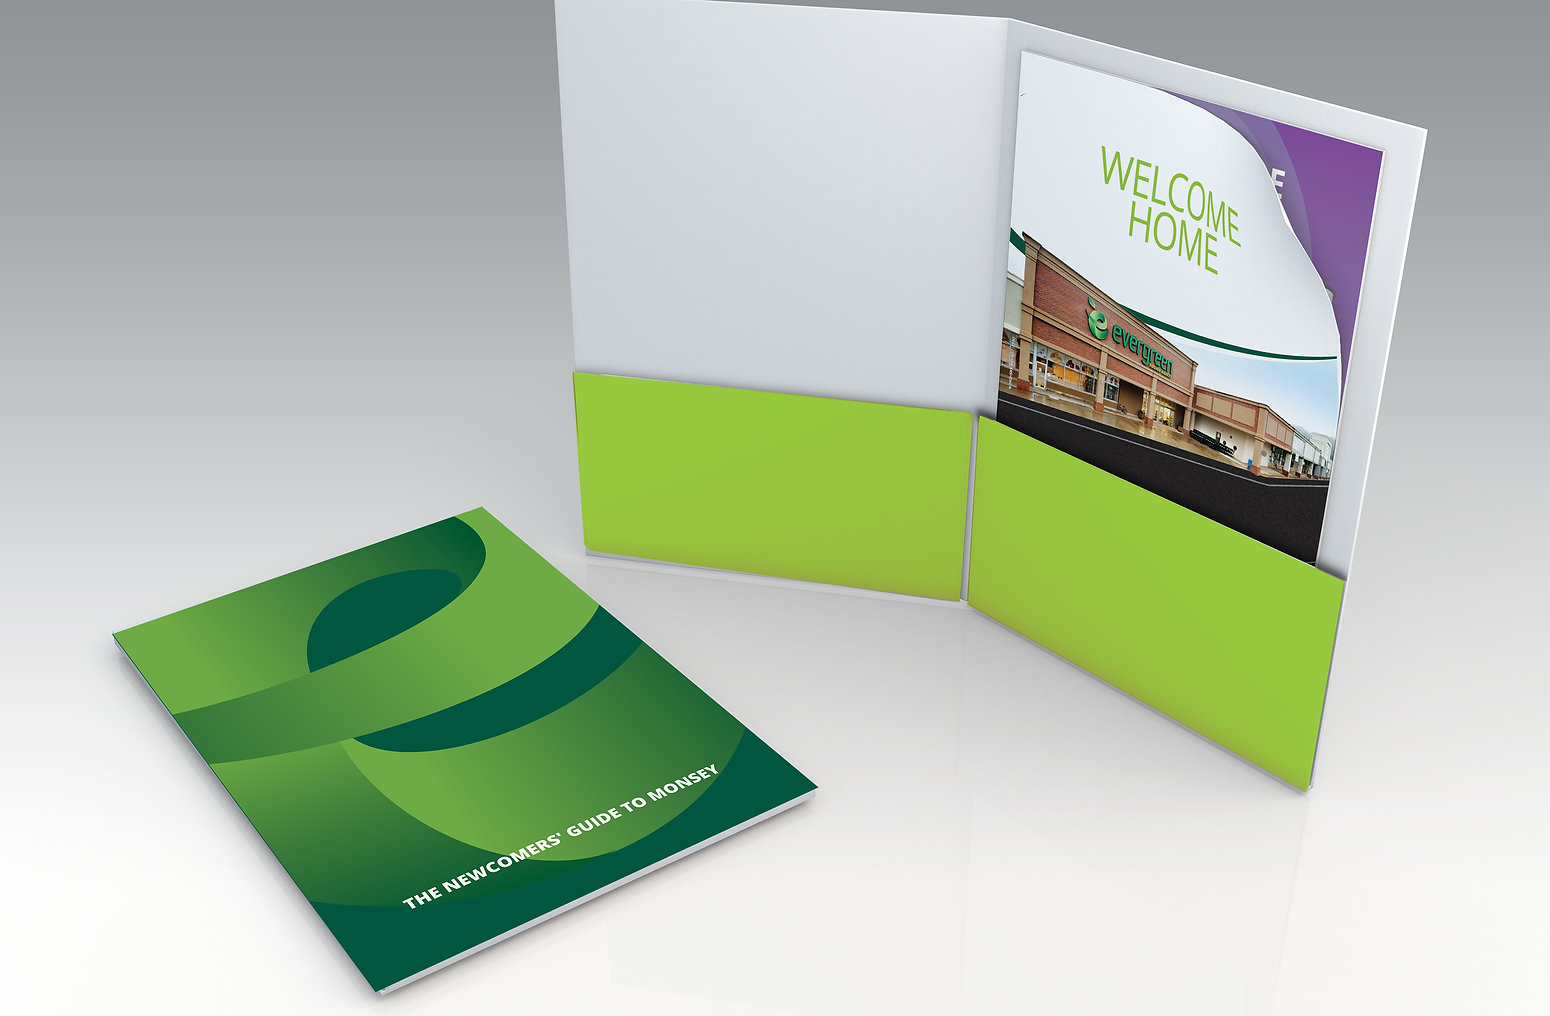 """Evergreen """"New to Monsey"""" Newcomer's Welcome Kit/Guide by HighSky Creative"""